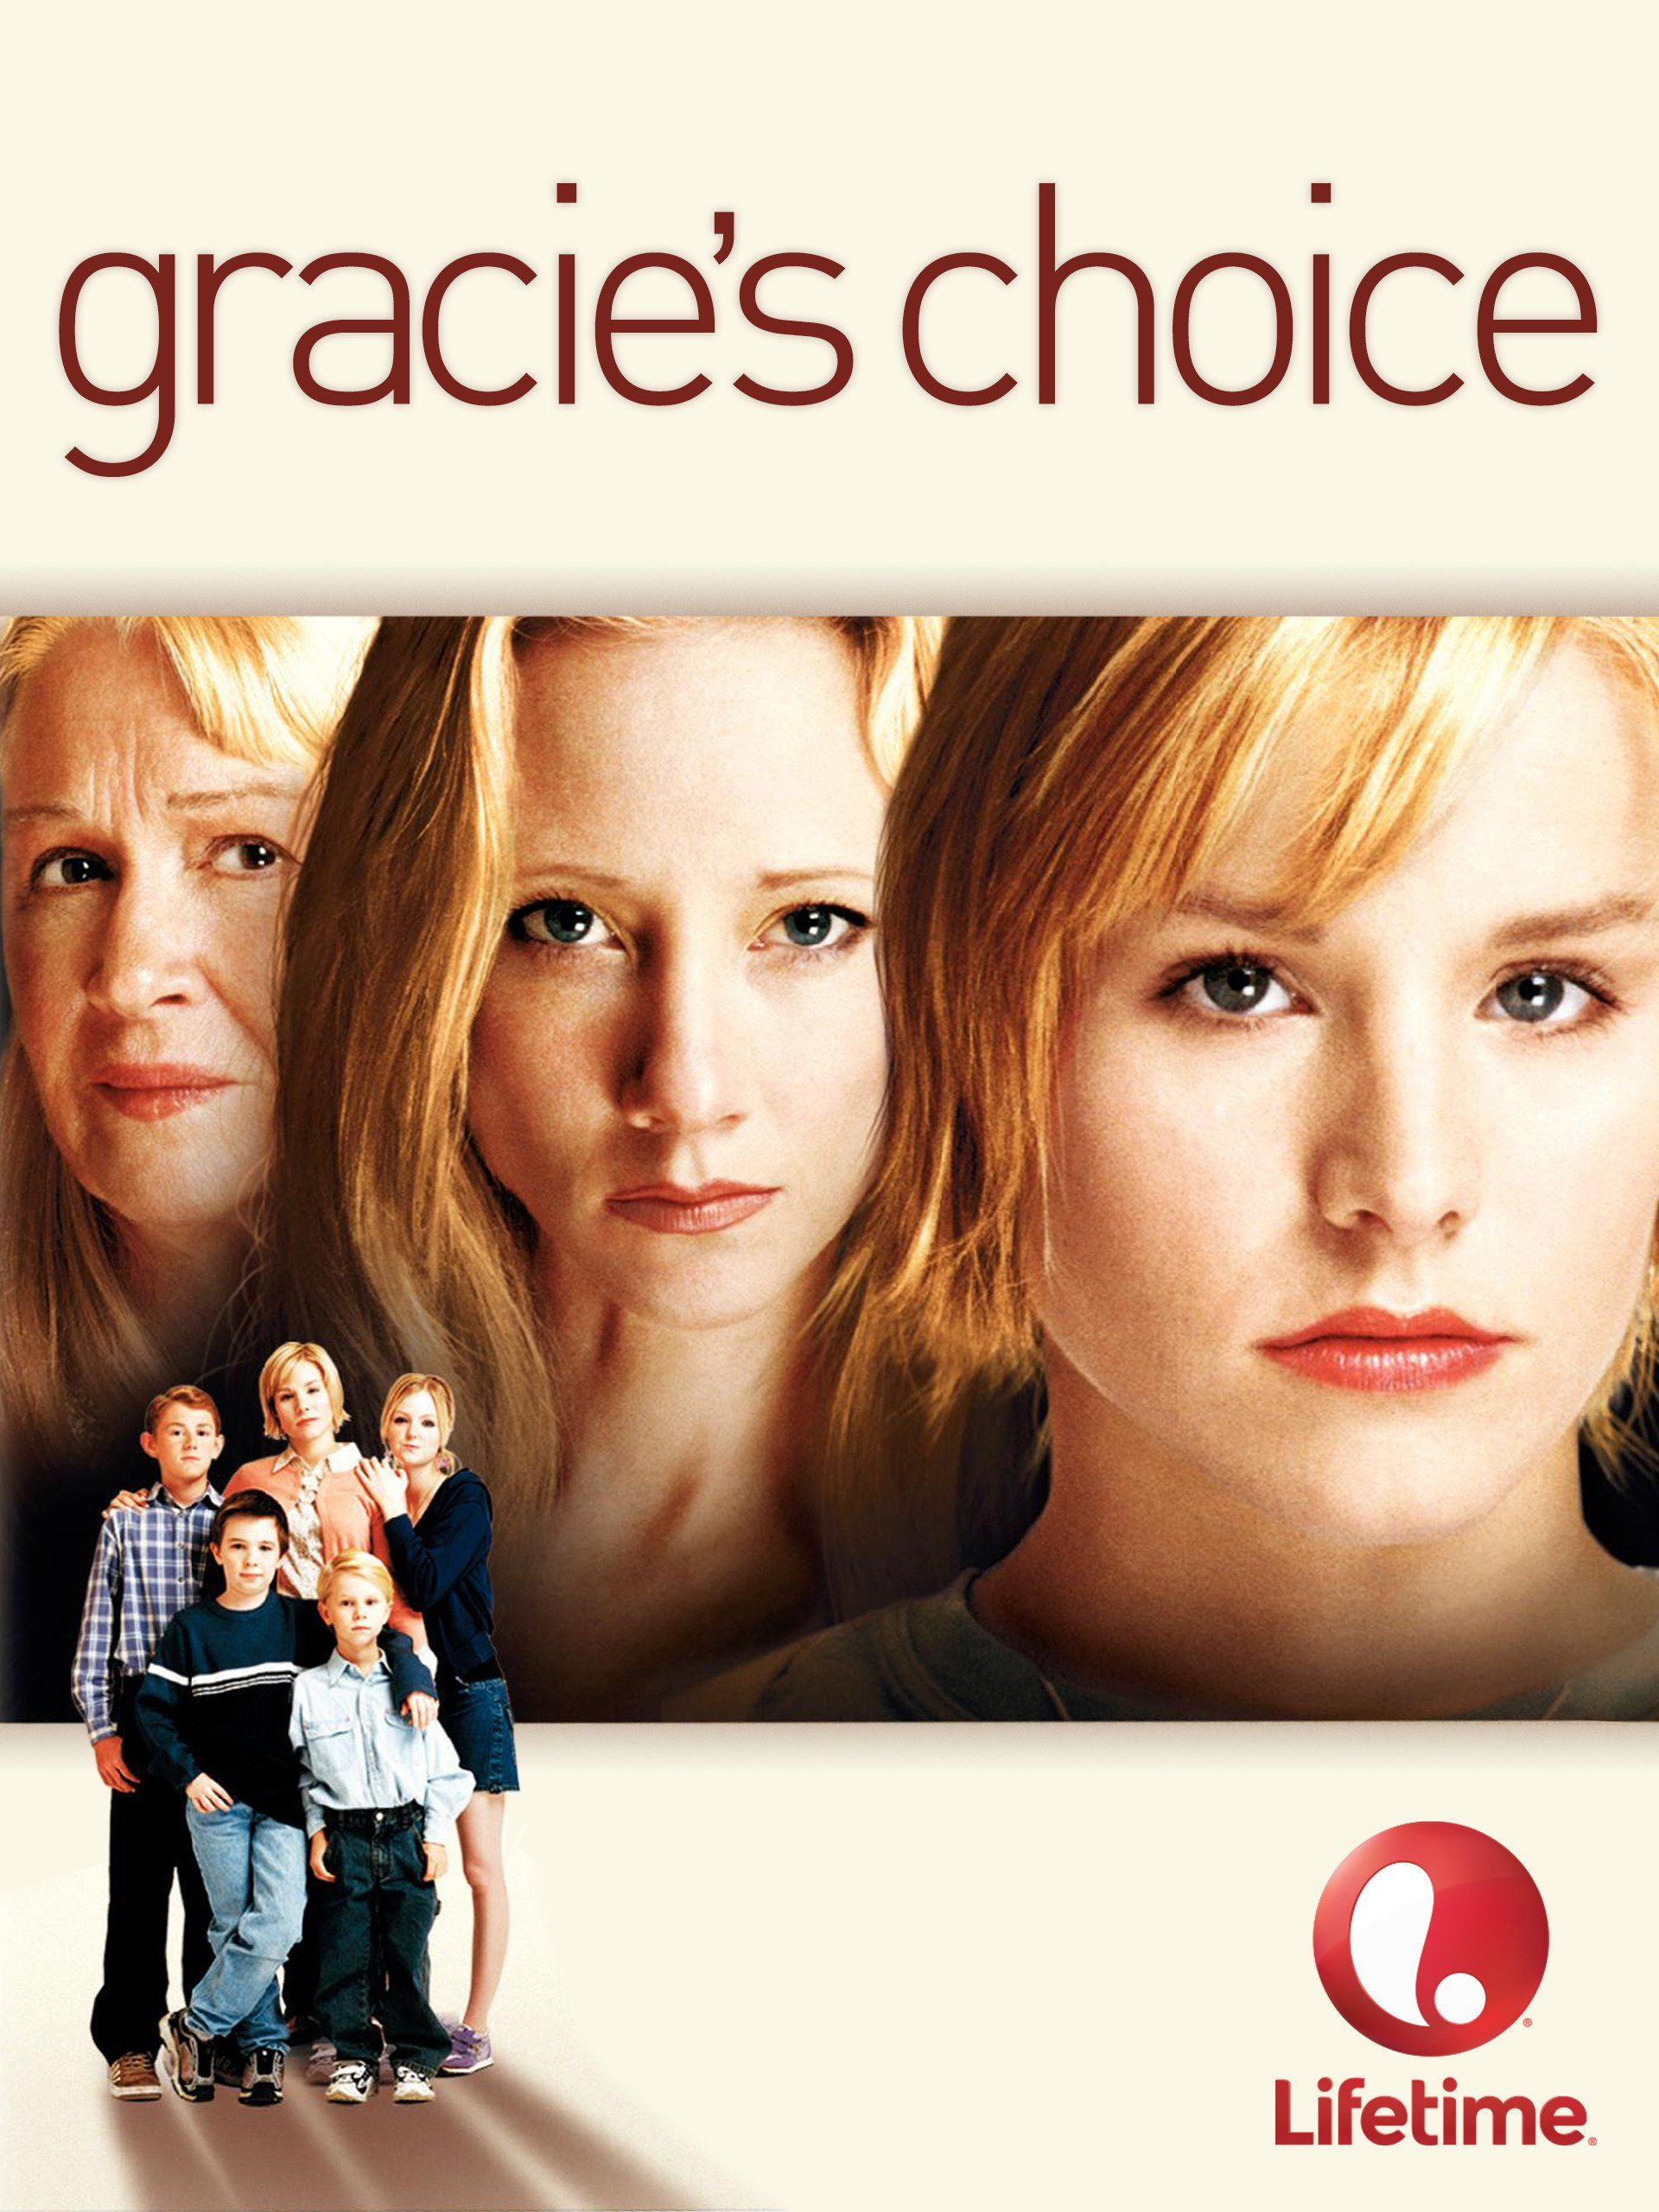 Best Lifetime Movies (Updated 2020)